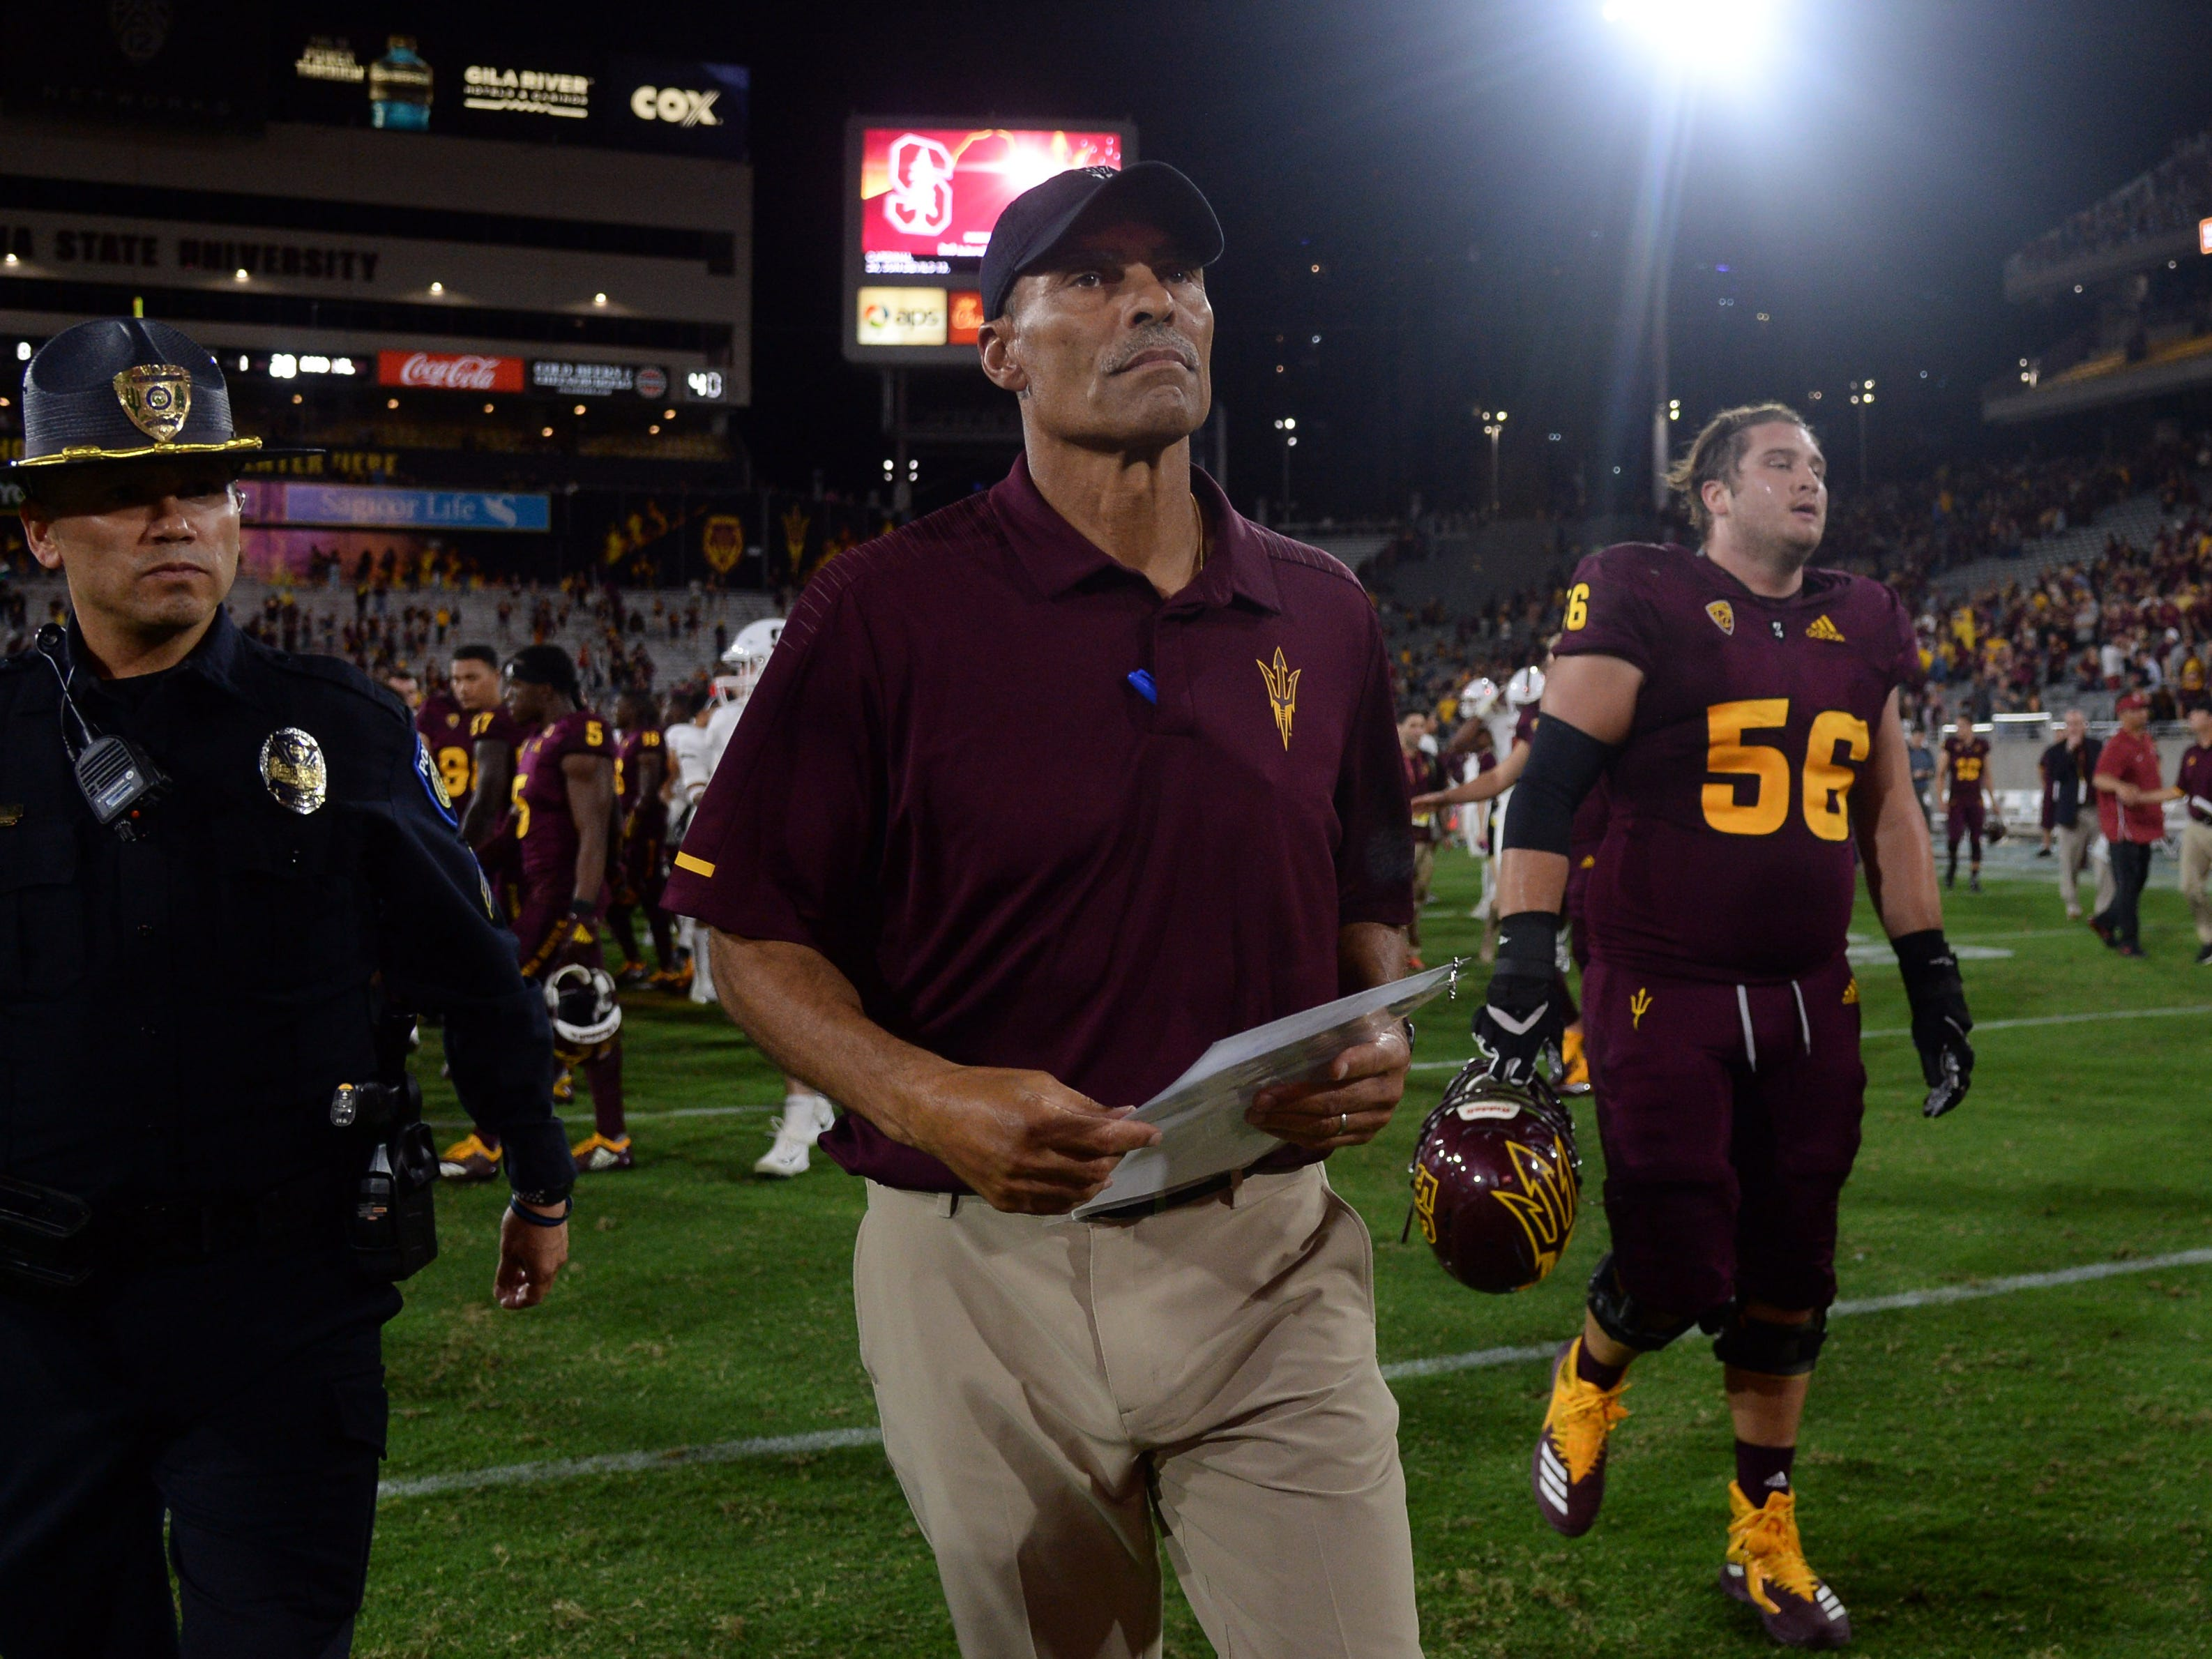 Oct 18, 2018; Tempe, AZ, USA; Arizona State Sun Devils head coach Herm Edwards leaves the after the game against the Stanford Cardinal at Sun Devil Stadium.